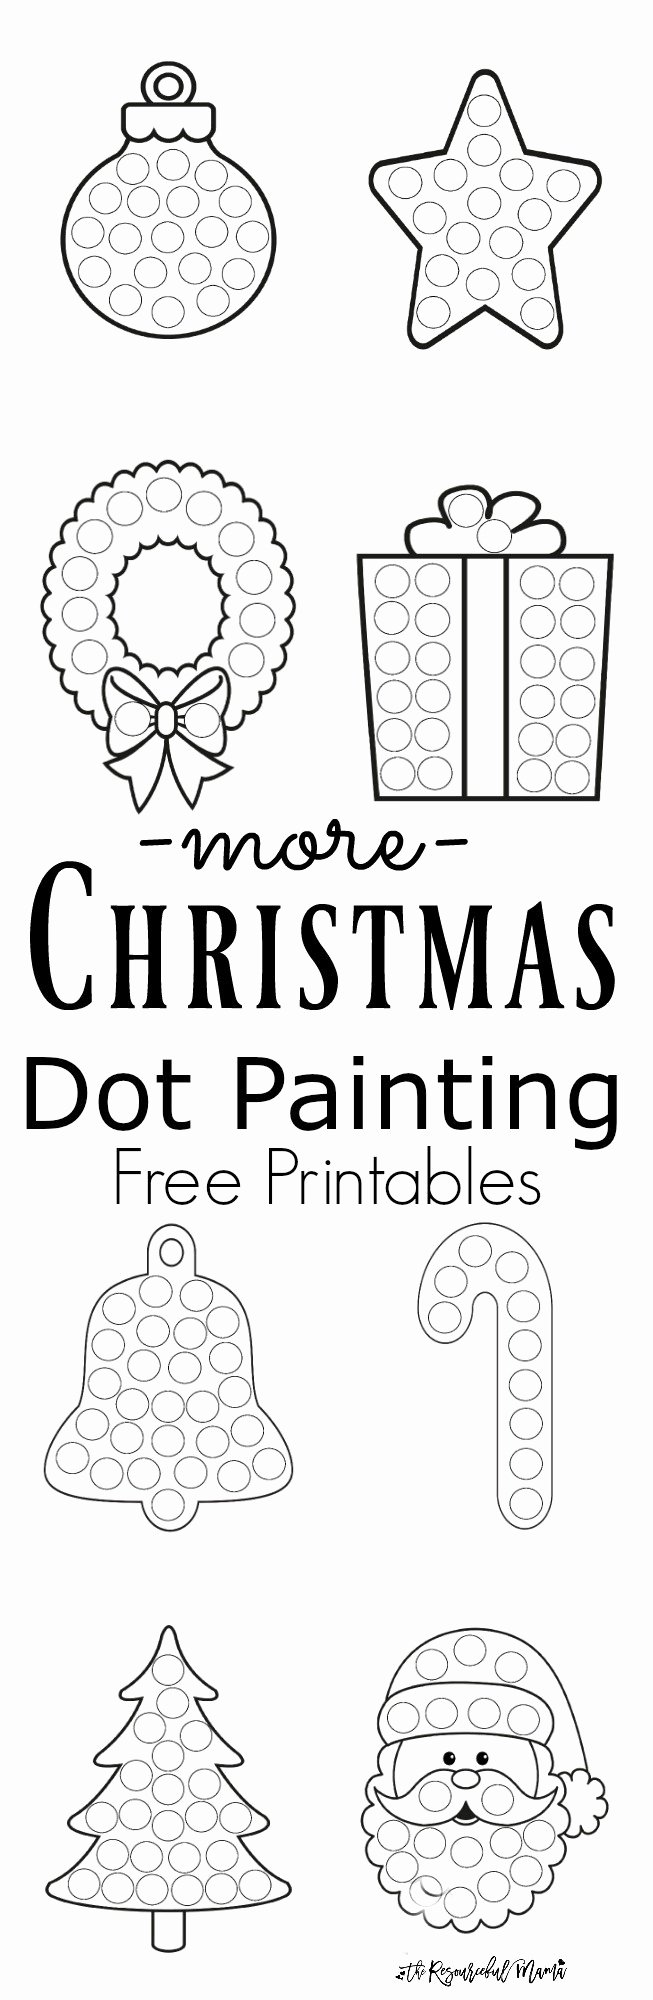 Christmas Dot to Dot Printables Fresh More Christmas Dot Painting Free Printables the